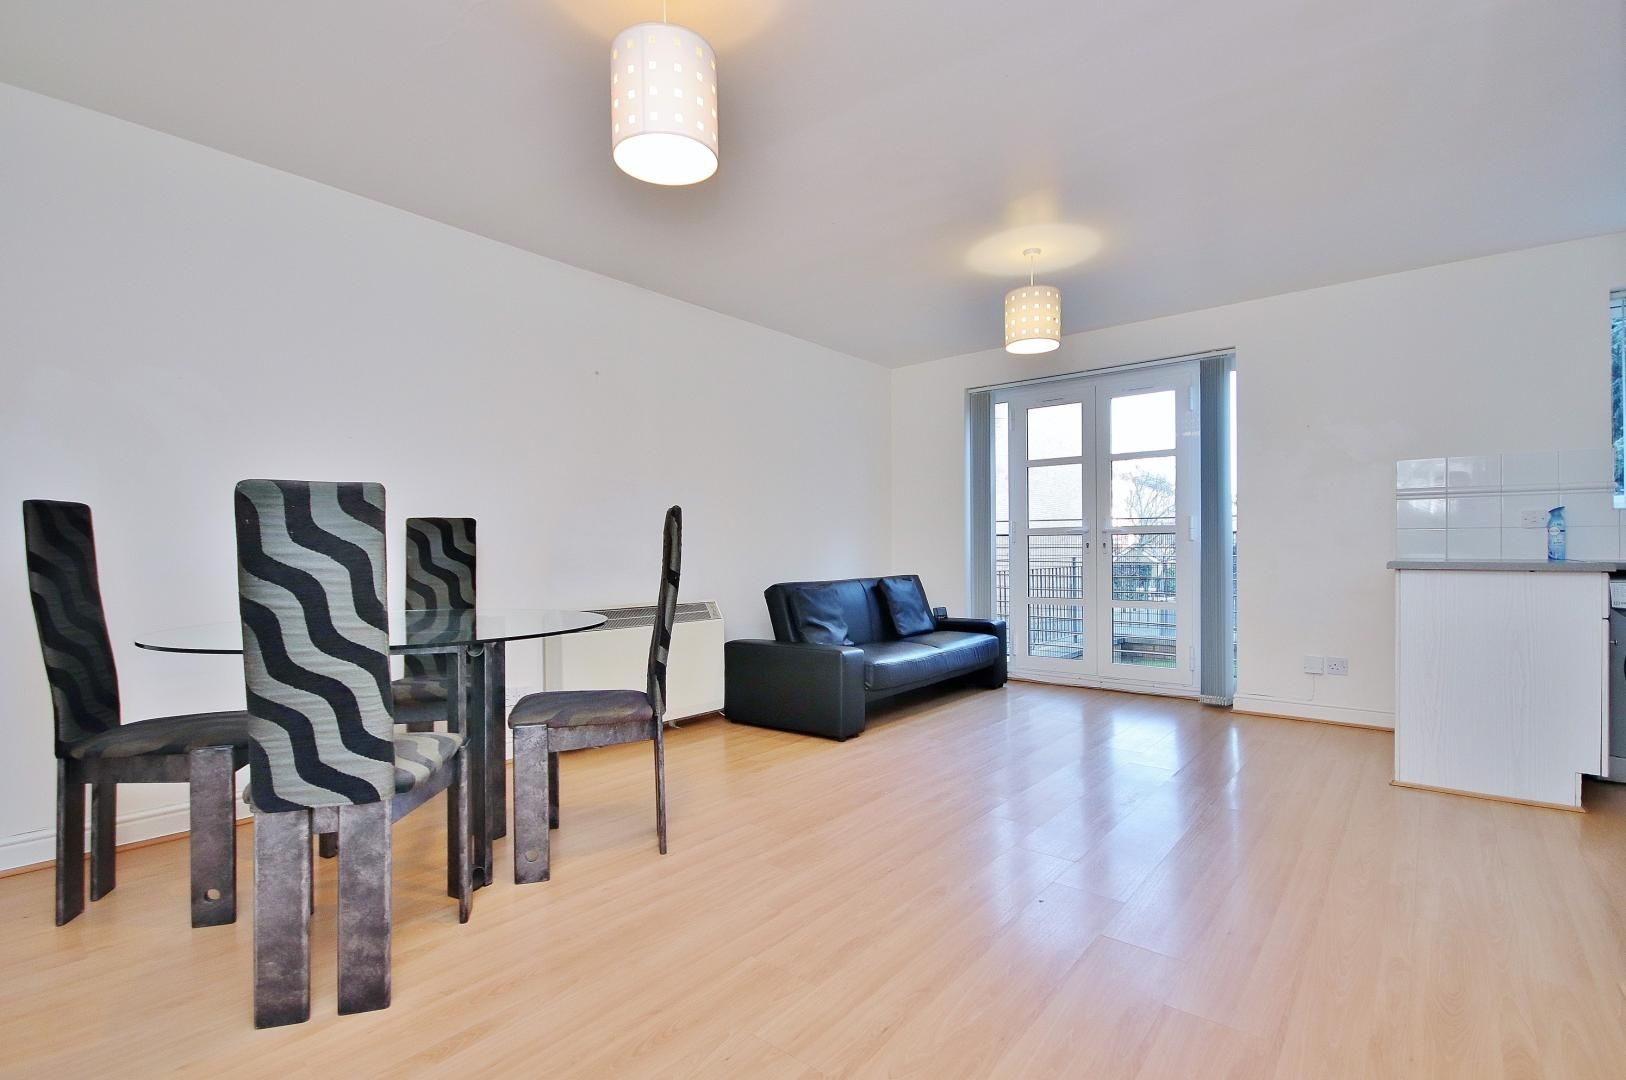 2 bed  to rent in Langbourne Place, E14